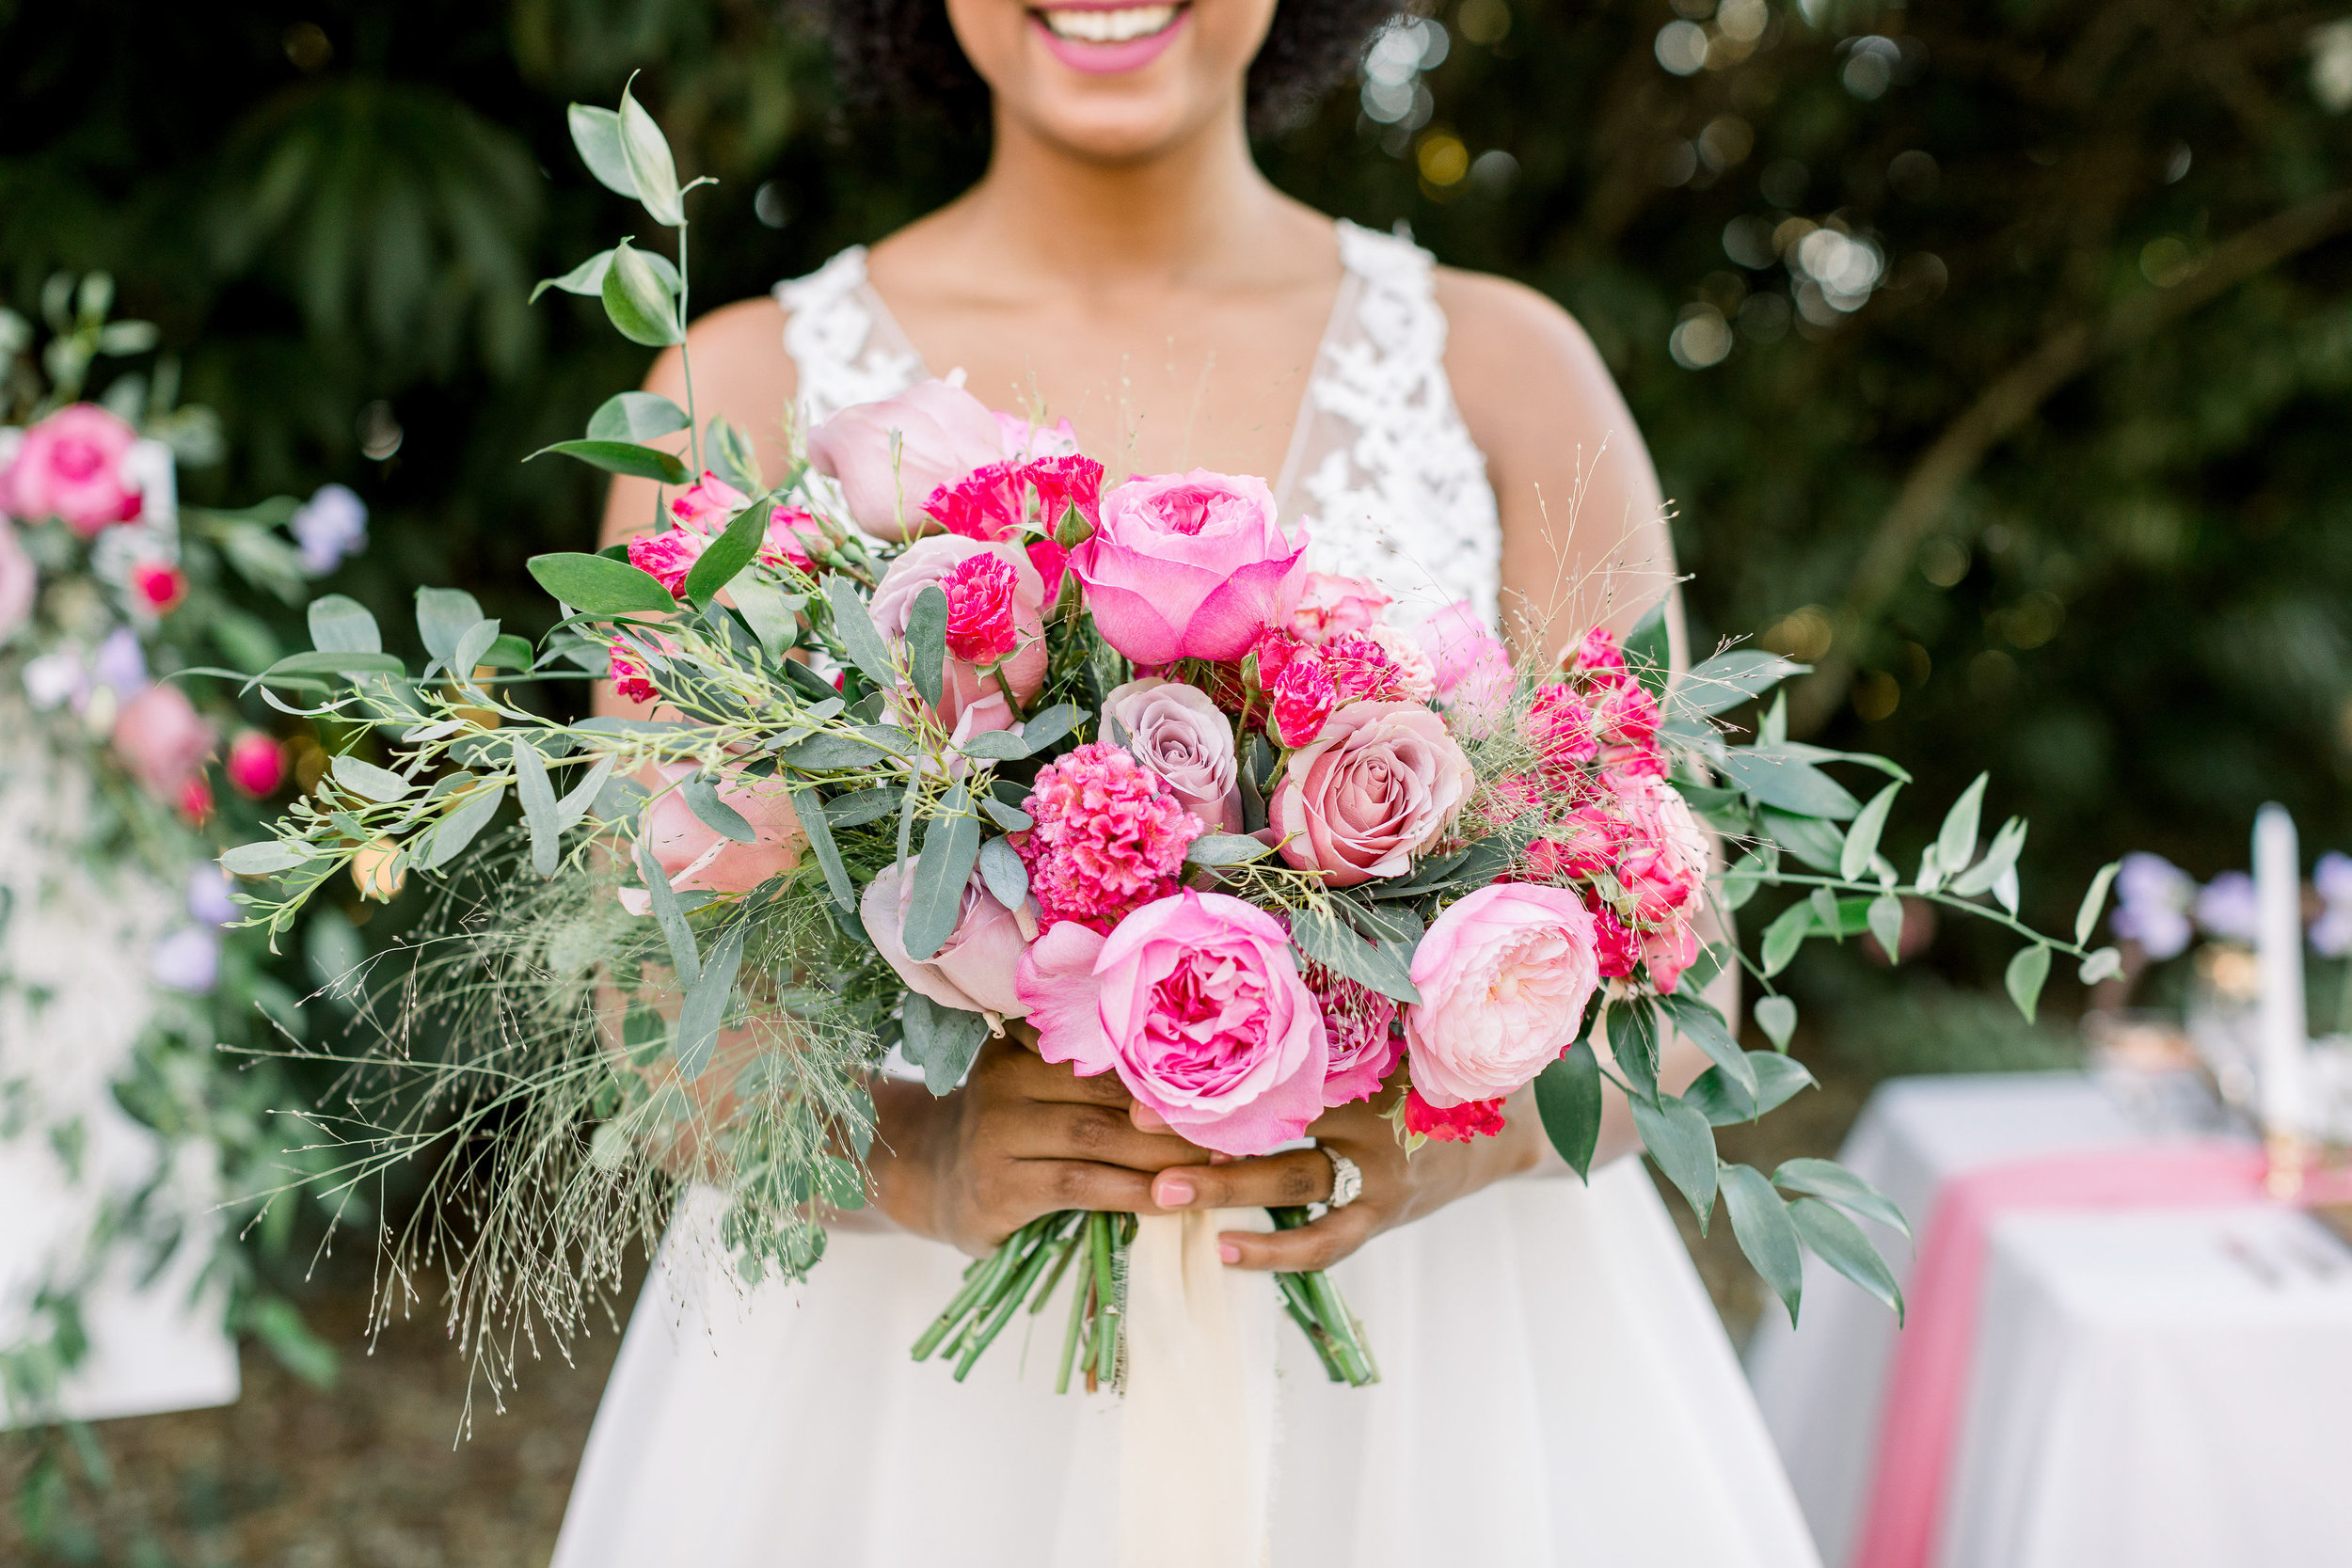 Pink Wedding | Feminine Wedding | Spring Wedding | Wedding Table Decor | Pink Wedding Flowers | Bridal Bouquet